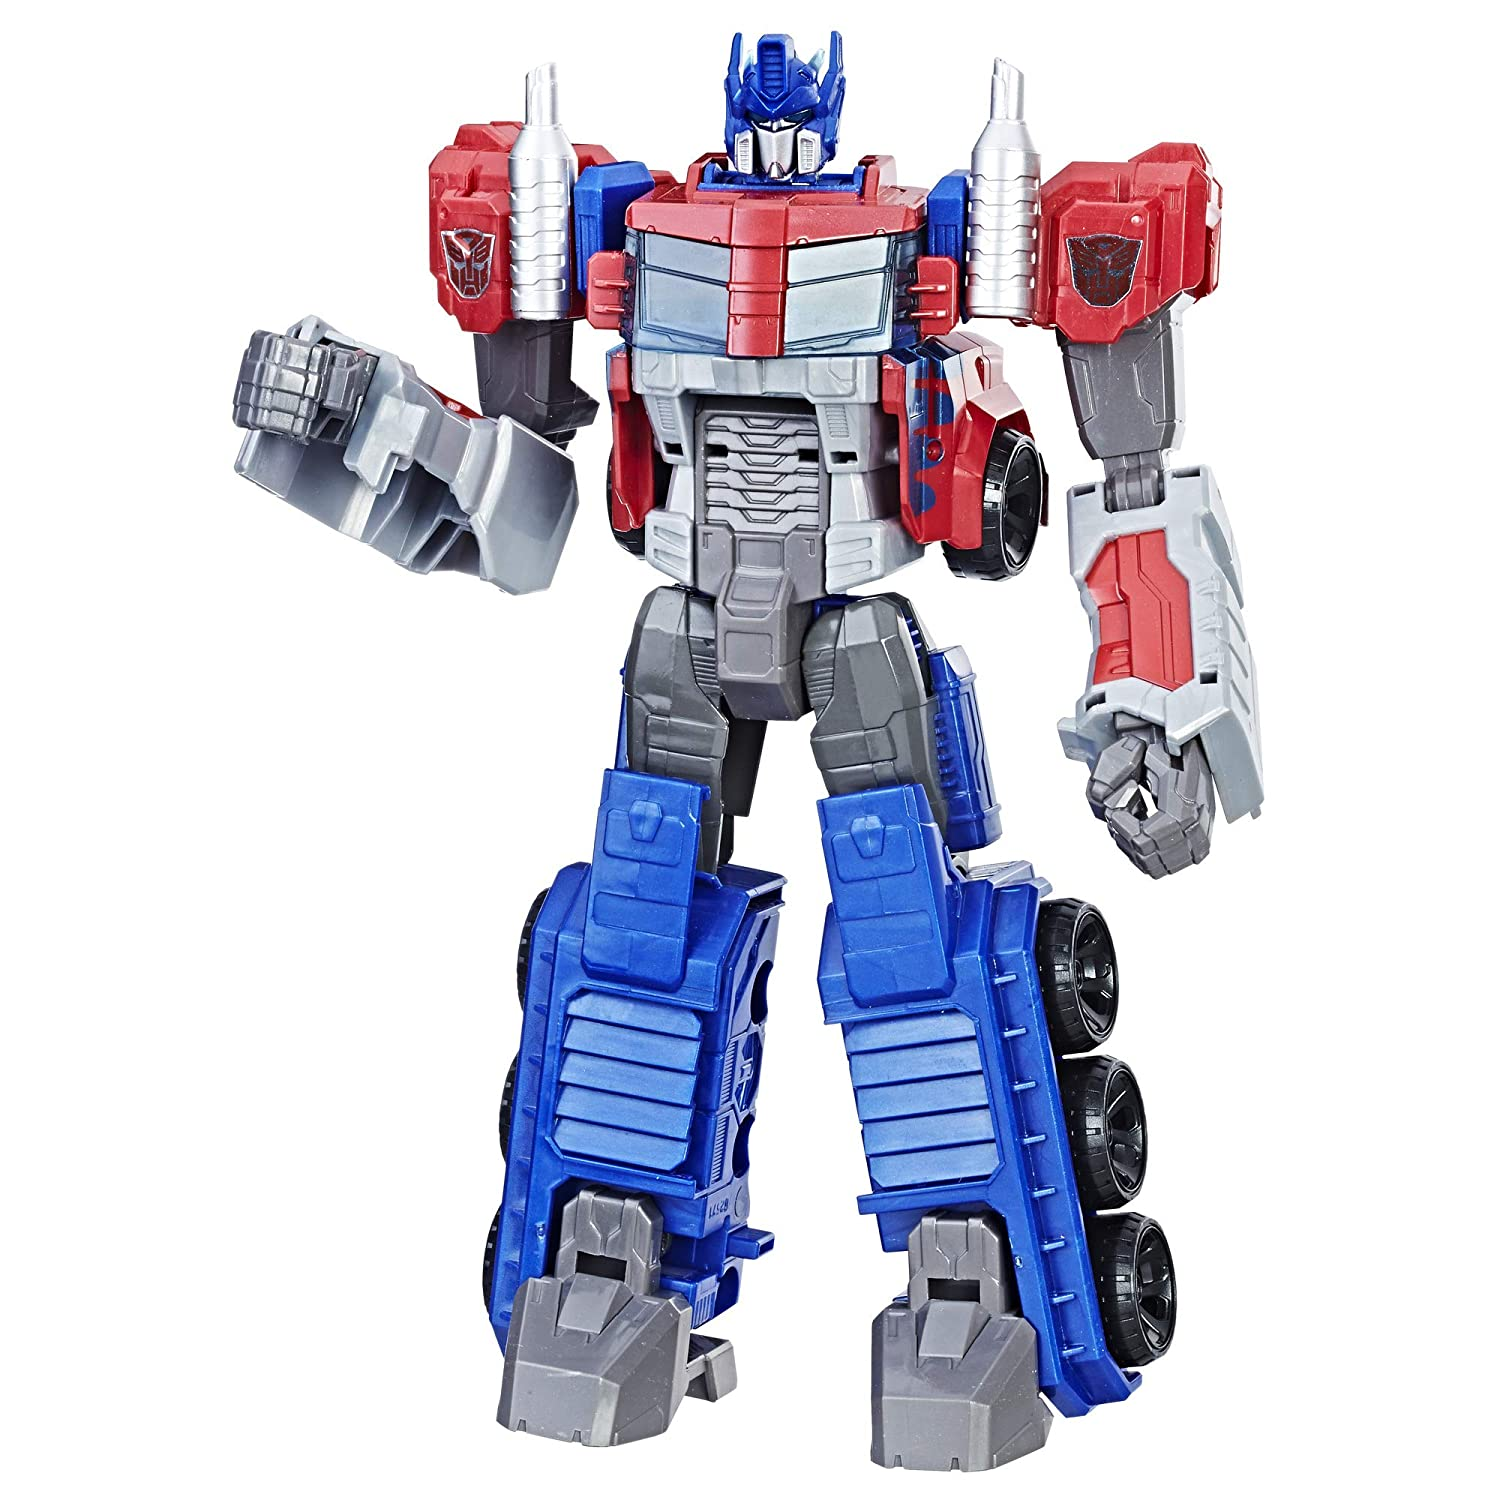 Transformers Toys Heroic Optimus Prime Action Figure